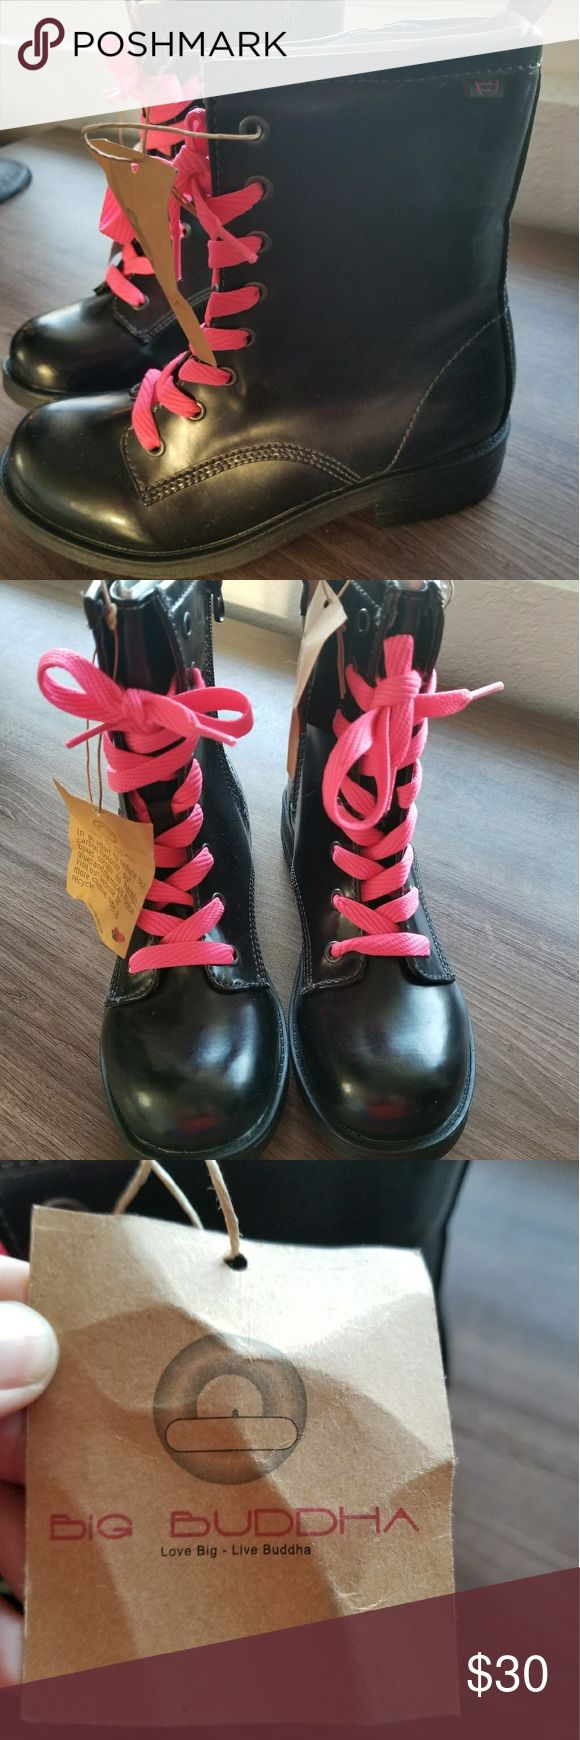 Black Combat Boots Black short boots Comes with original black shoe laces  Never worn, new with tags Size 7 Big Buddha Shoes Combat & Moto Boots